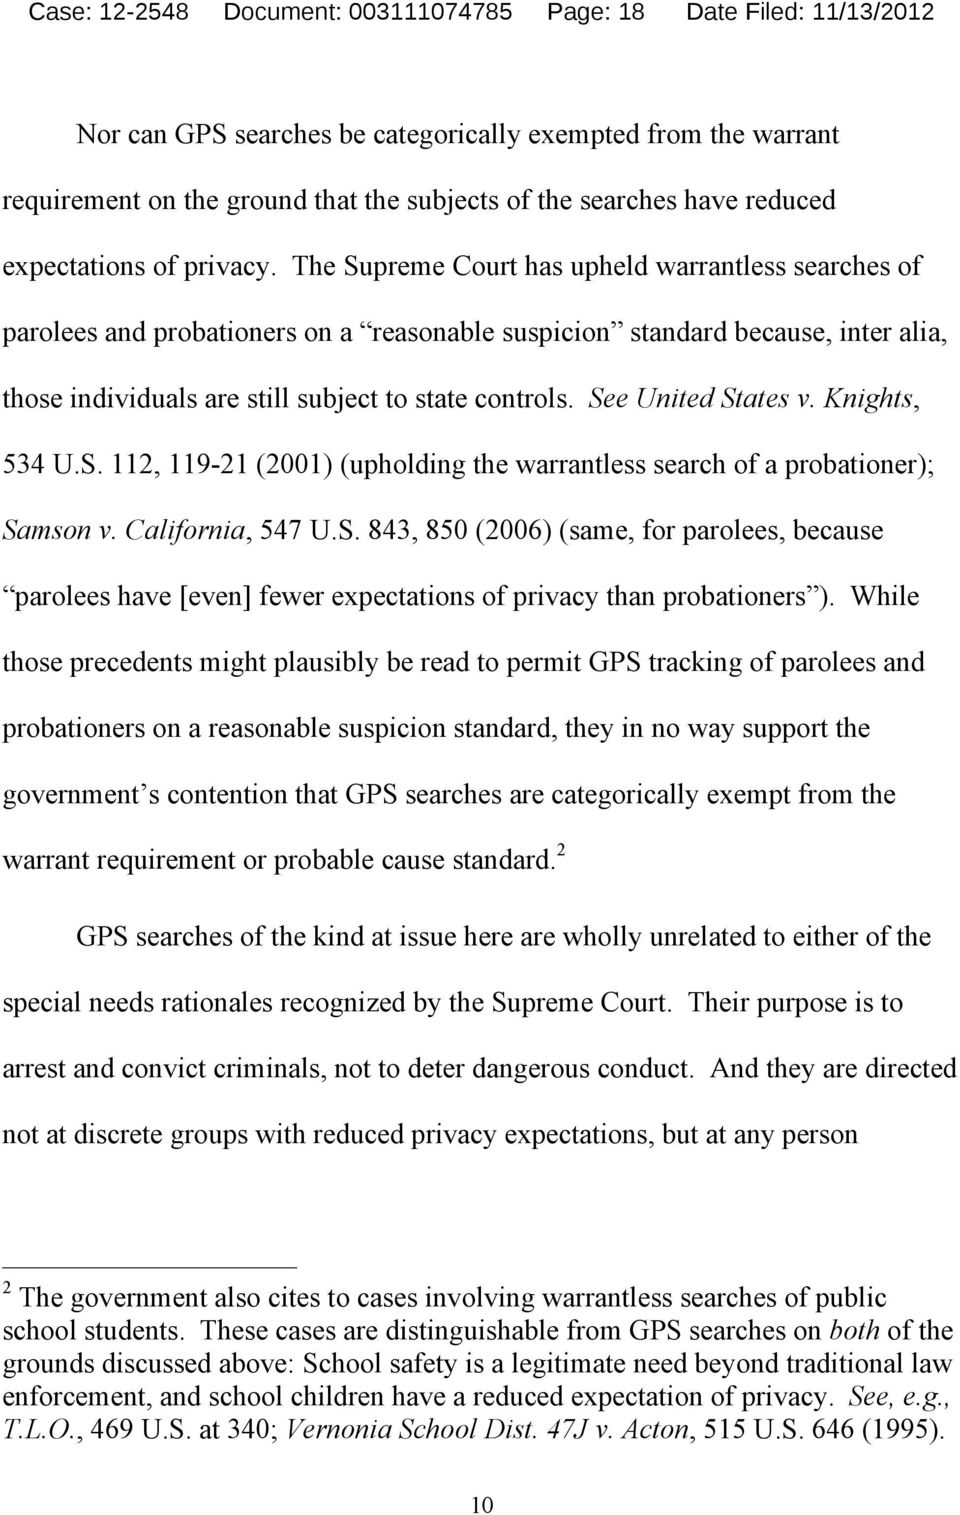 The Supreme Court has upheld warrantless searches of parolees and probationers on a reasonable suspicion standard because, inter alia, those individuals are still subject to state controls.